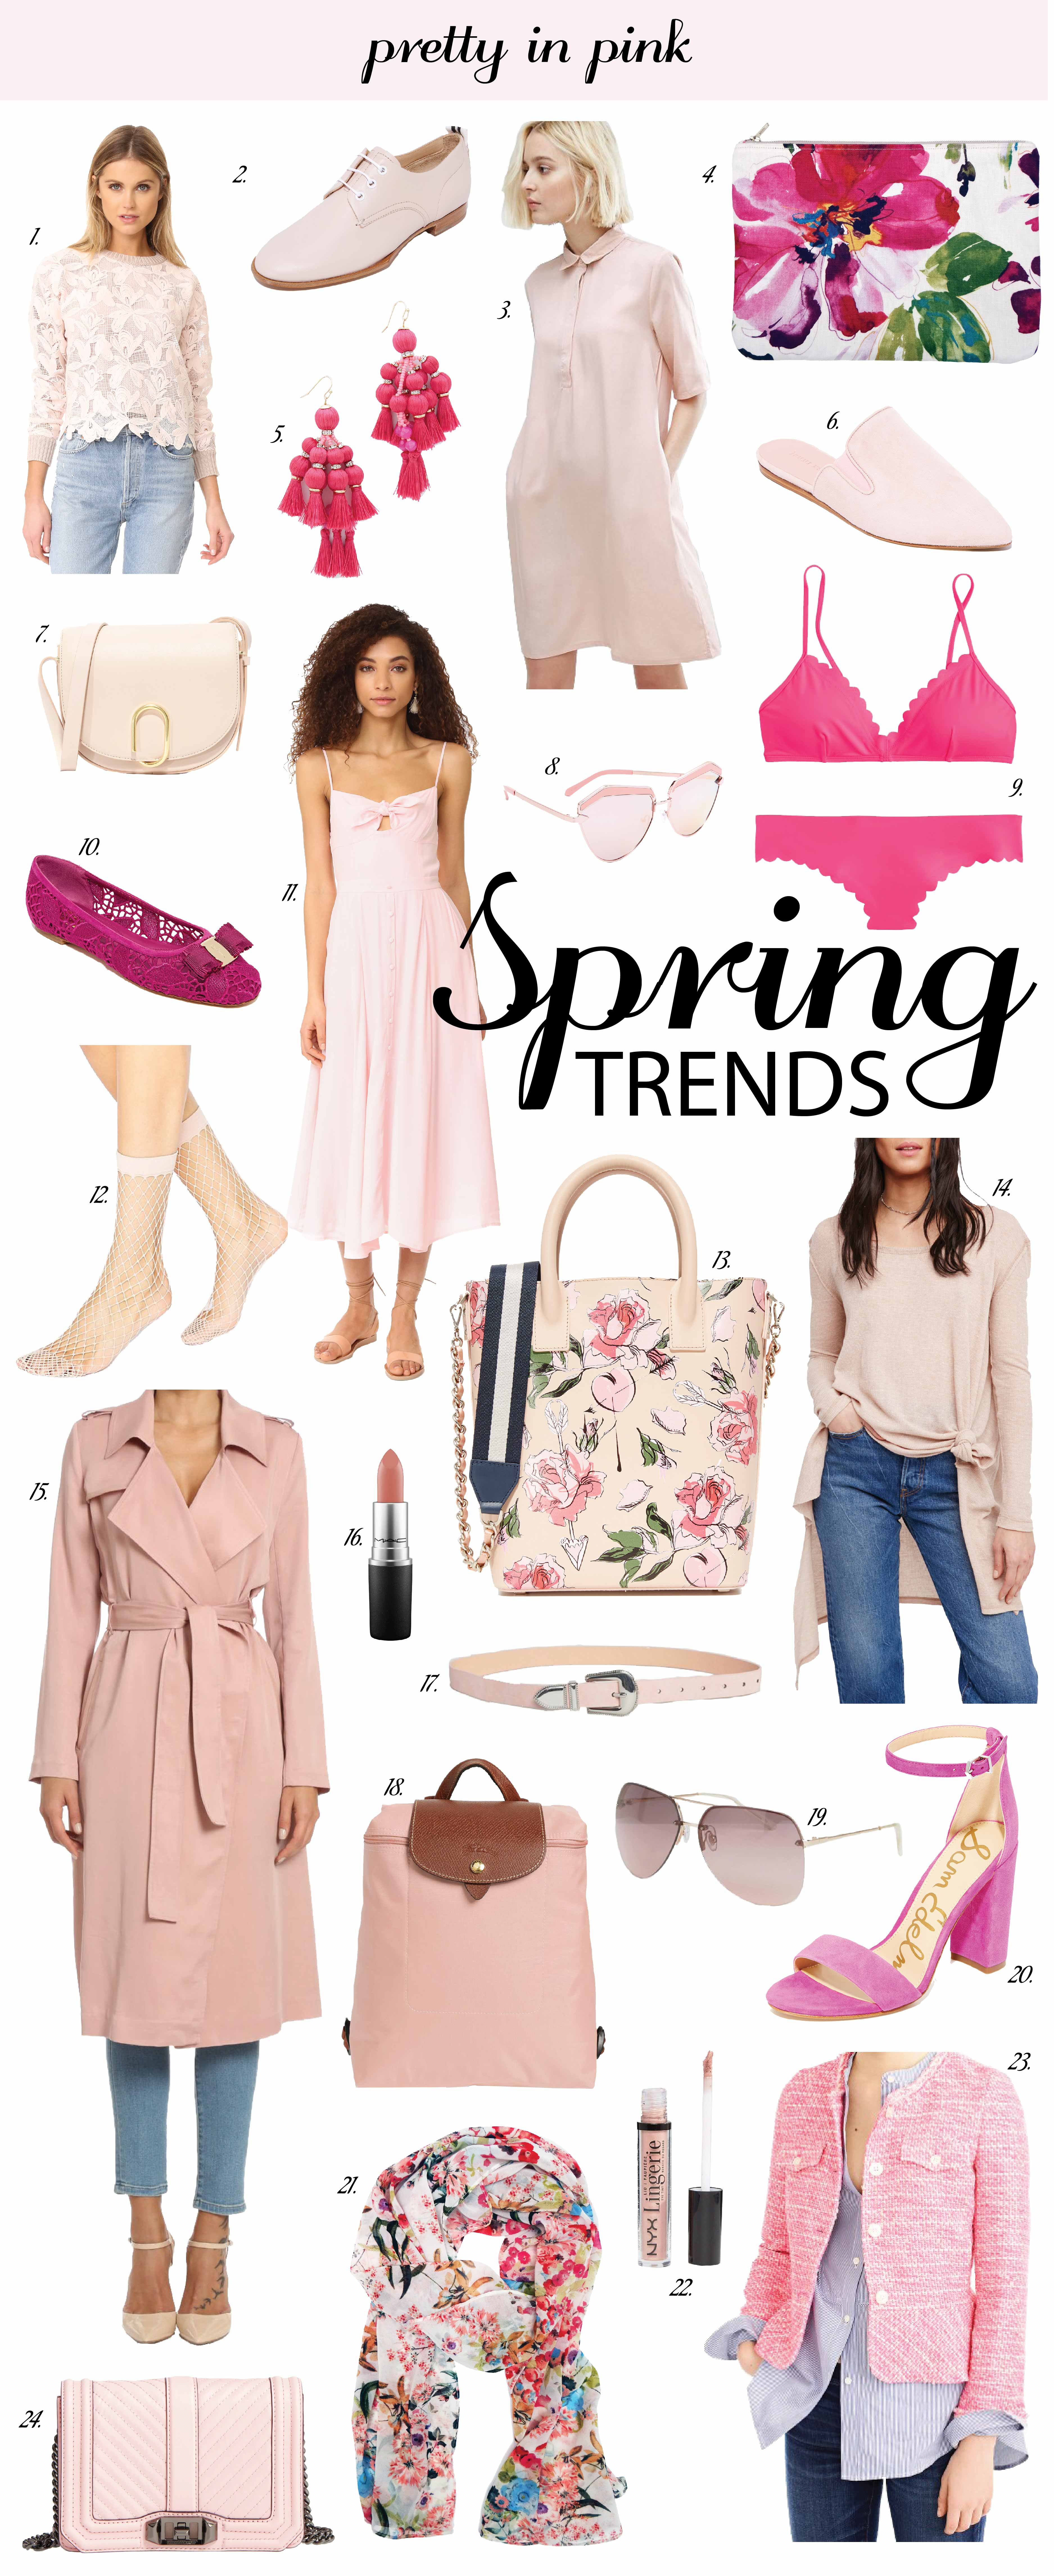 Spring Fashion Style Trends, Pink Clothes, Handbags, Accerssories